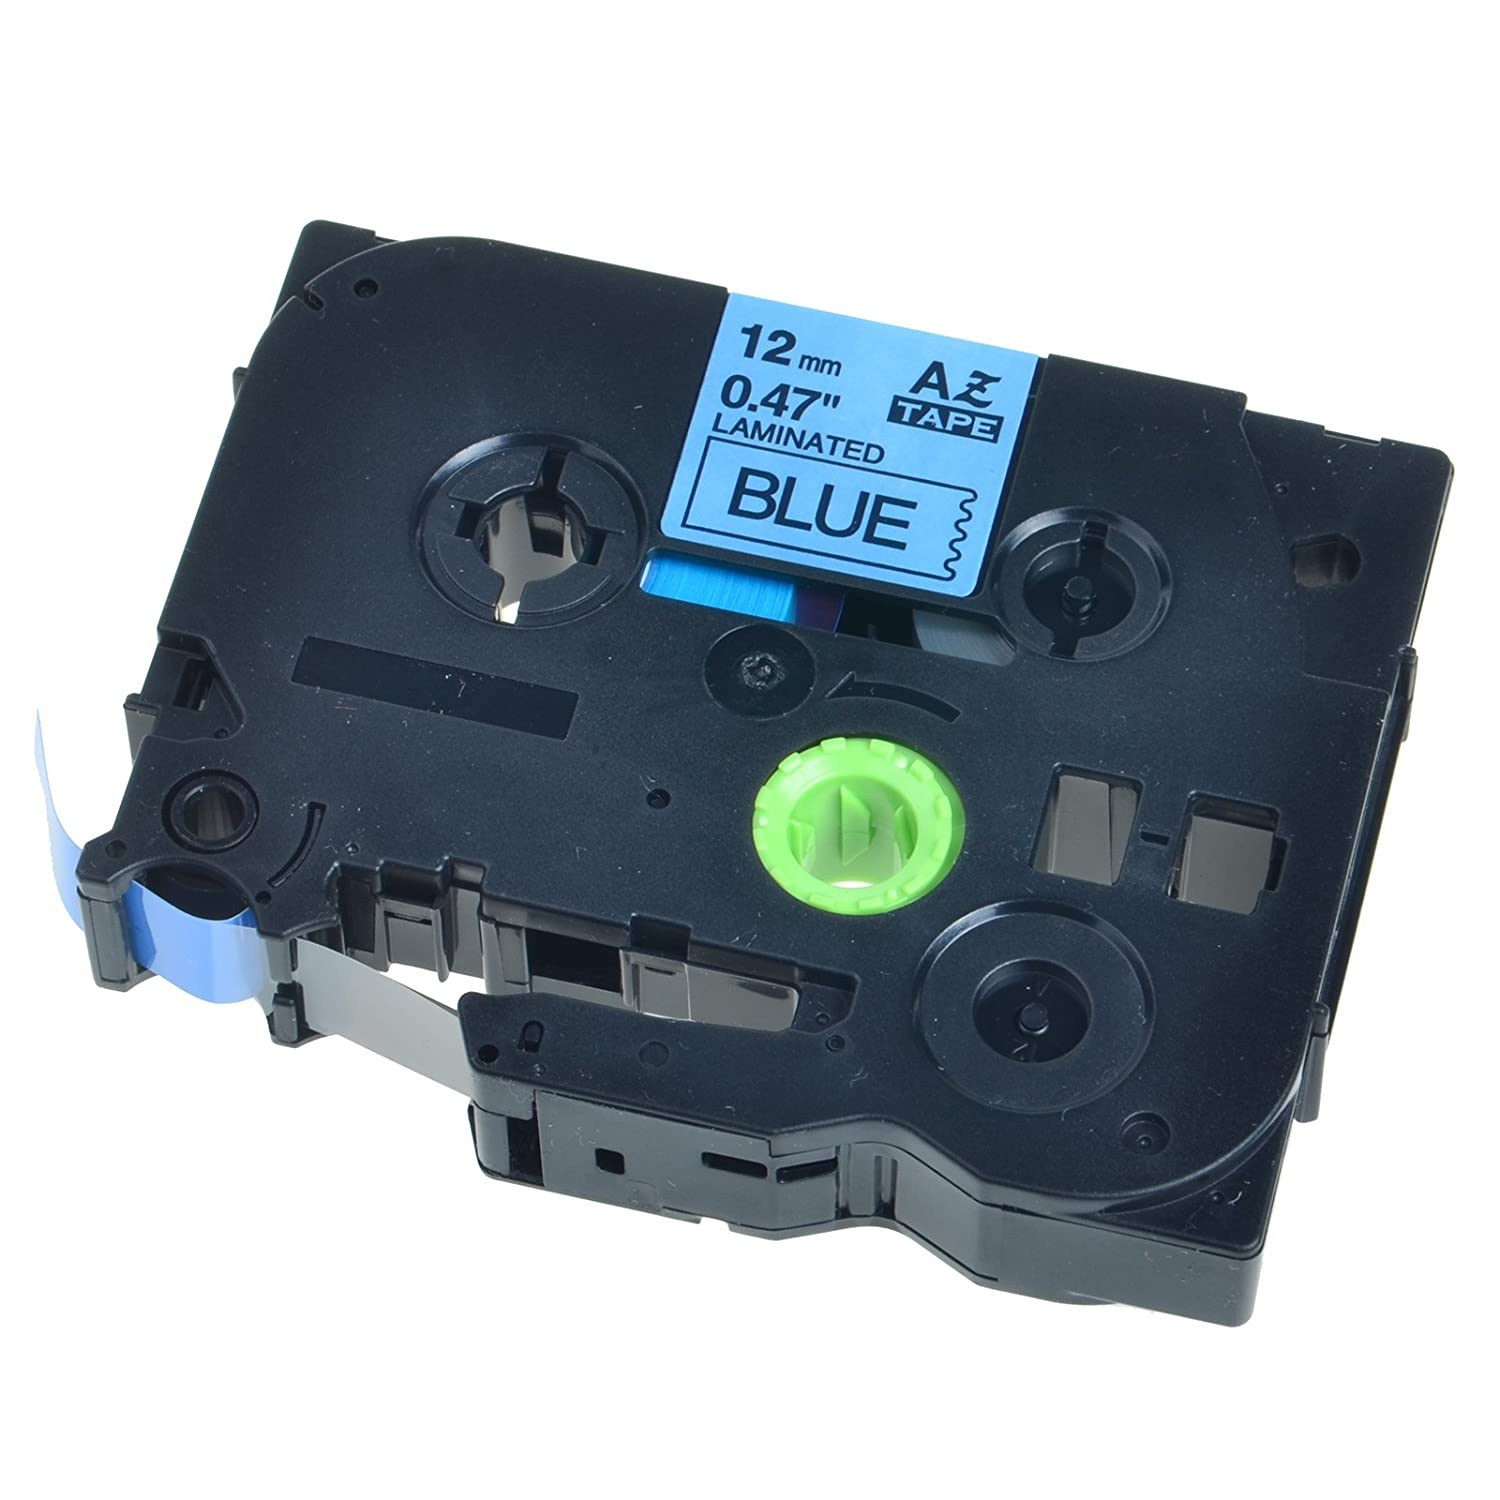 SuperInk Black on White 12mm label tape TZ 231 TZE-231 compatible for Brother P-Touch Series Printer